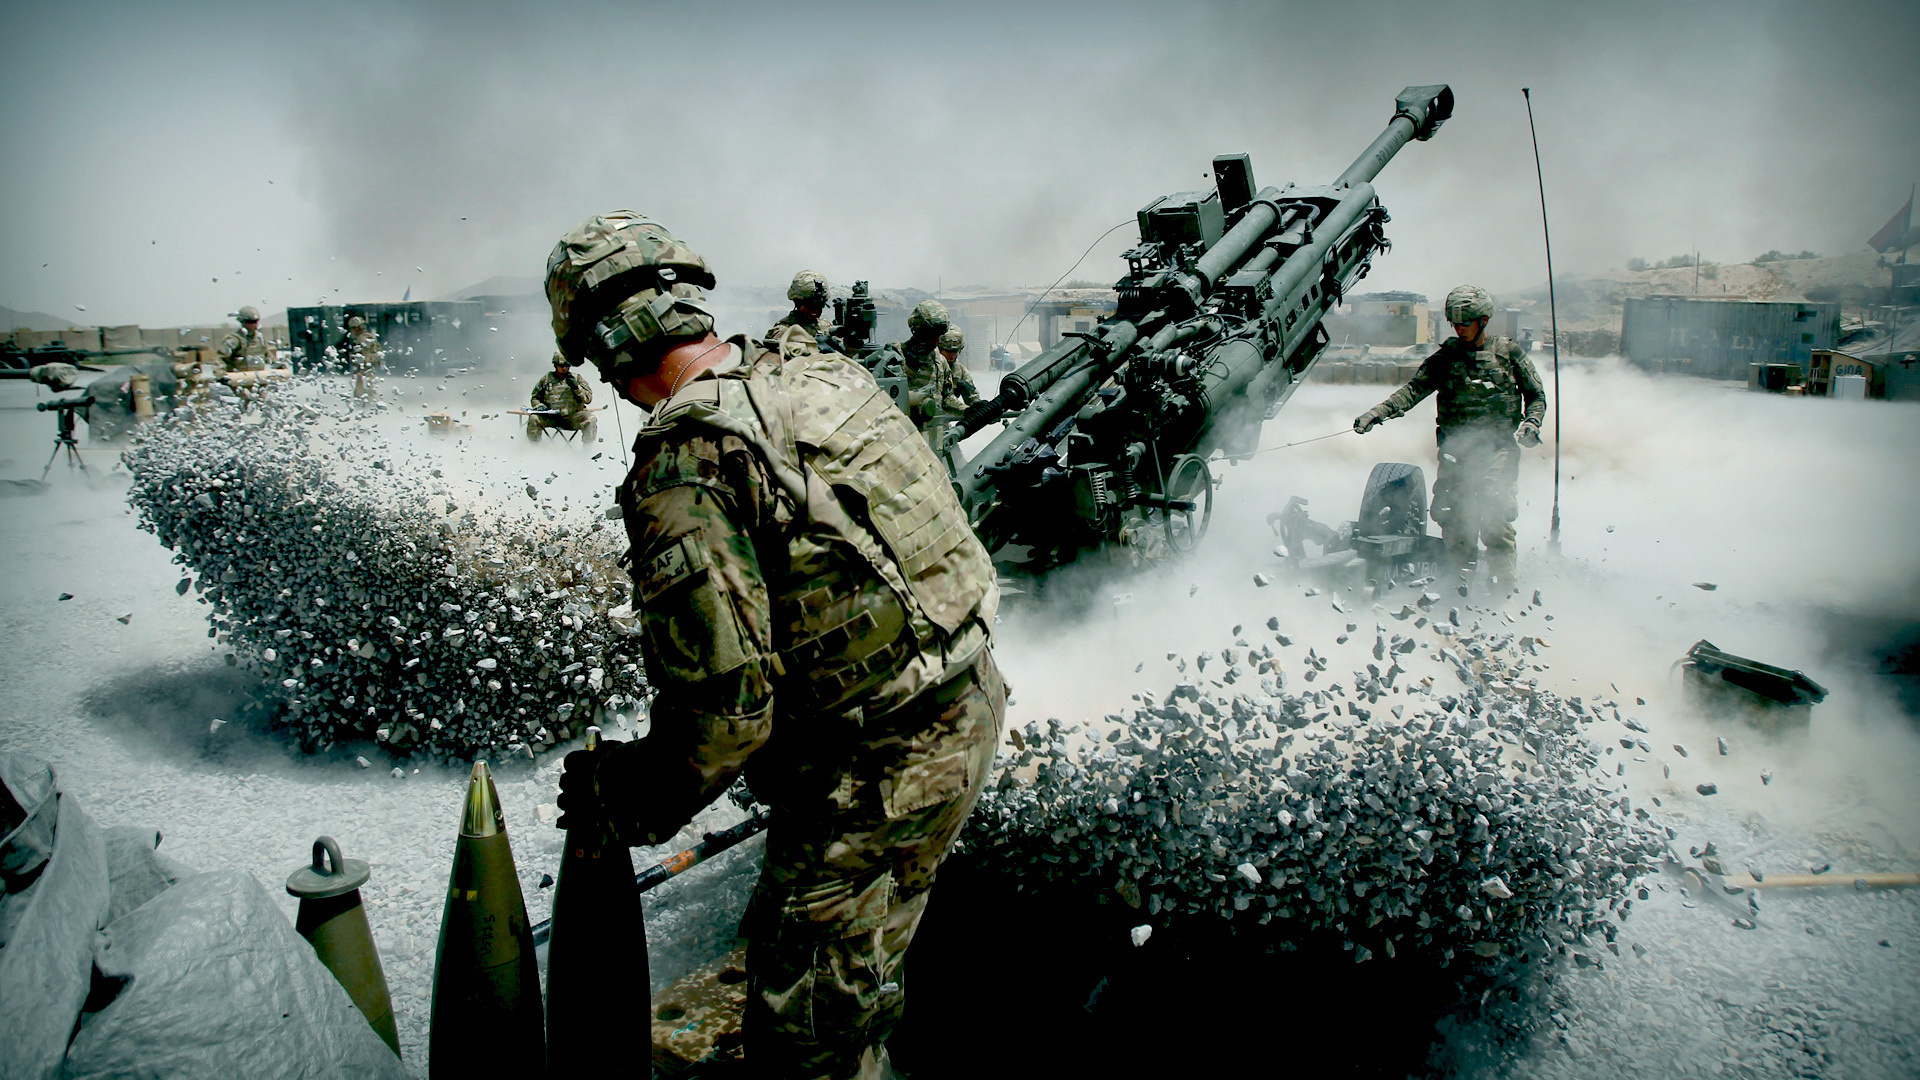 33937 download wallpaper People, Soldiers screensavers and pictures for free